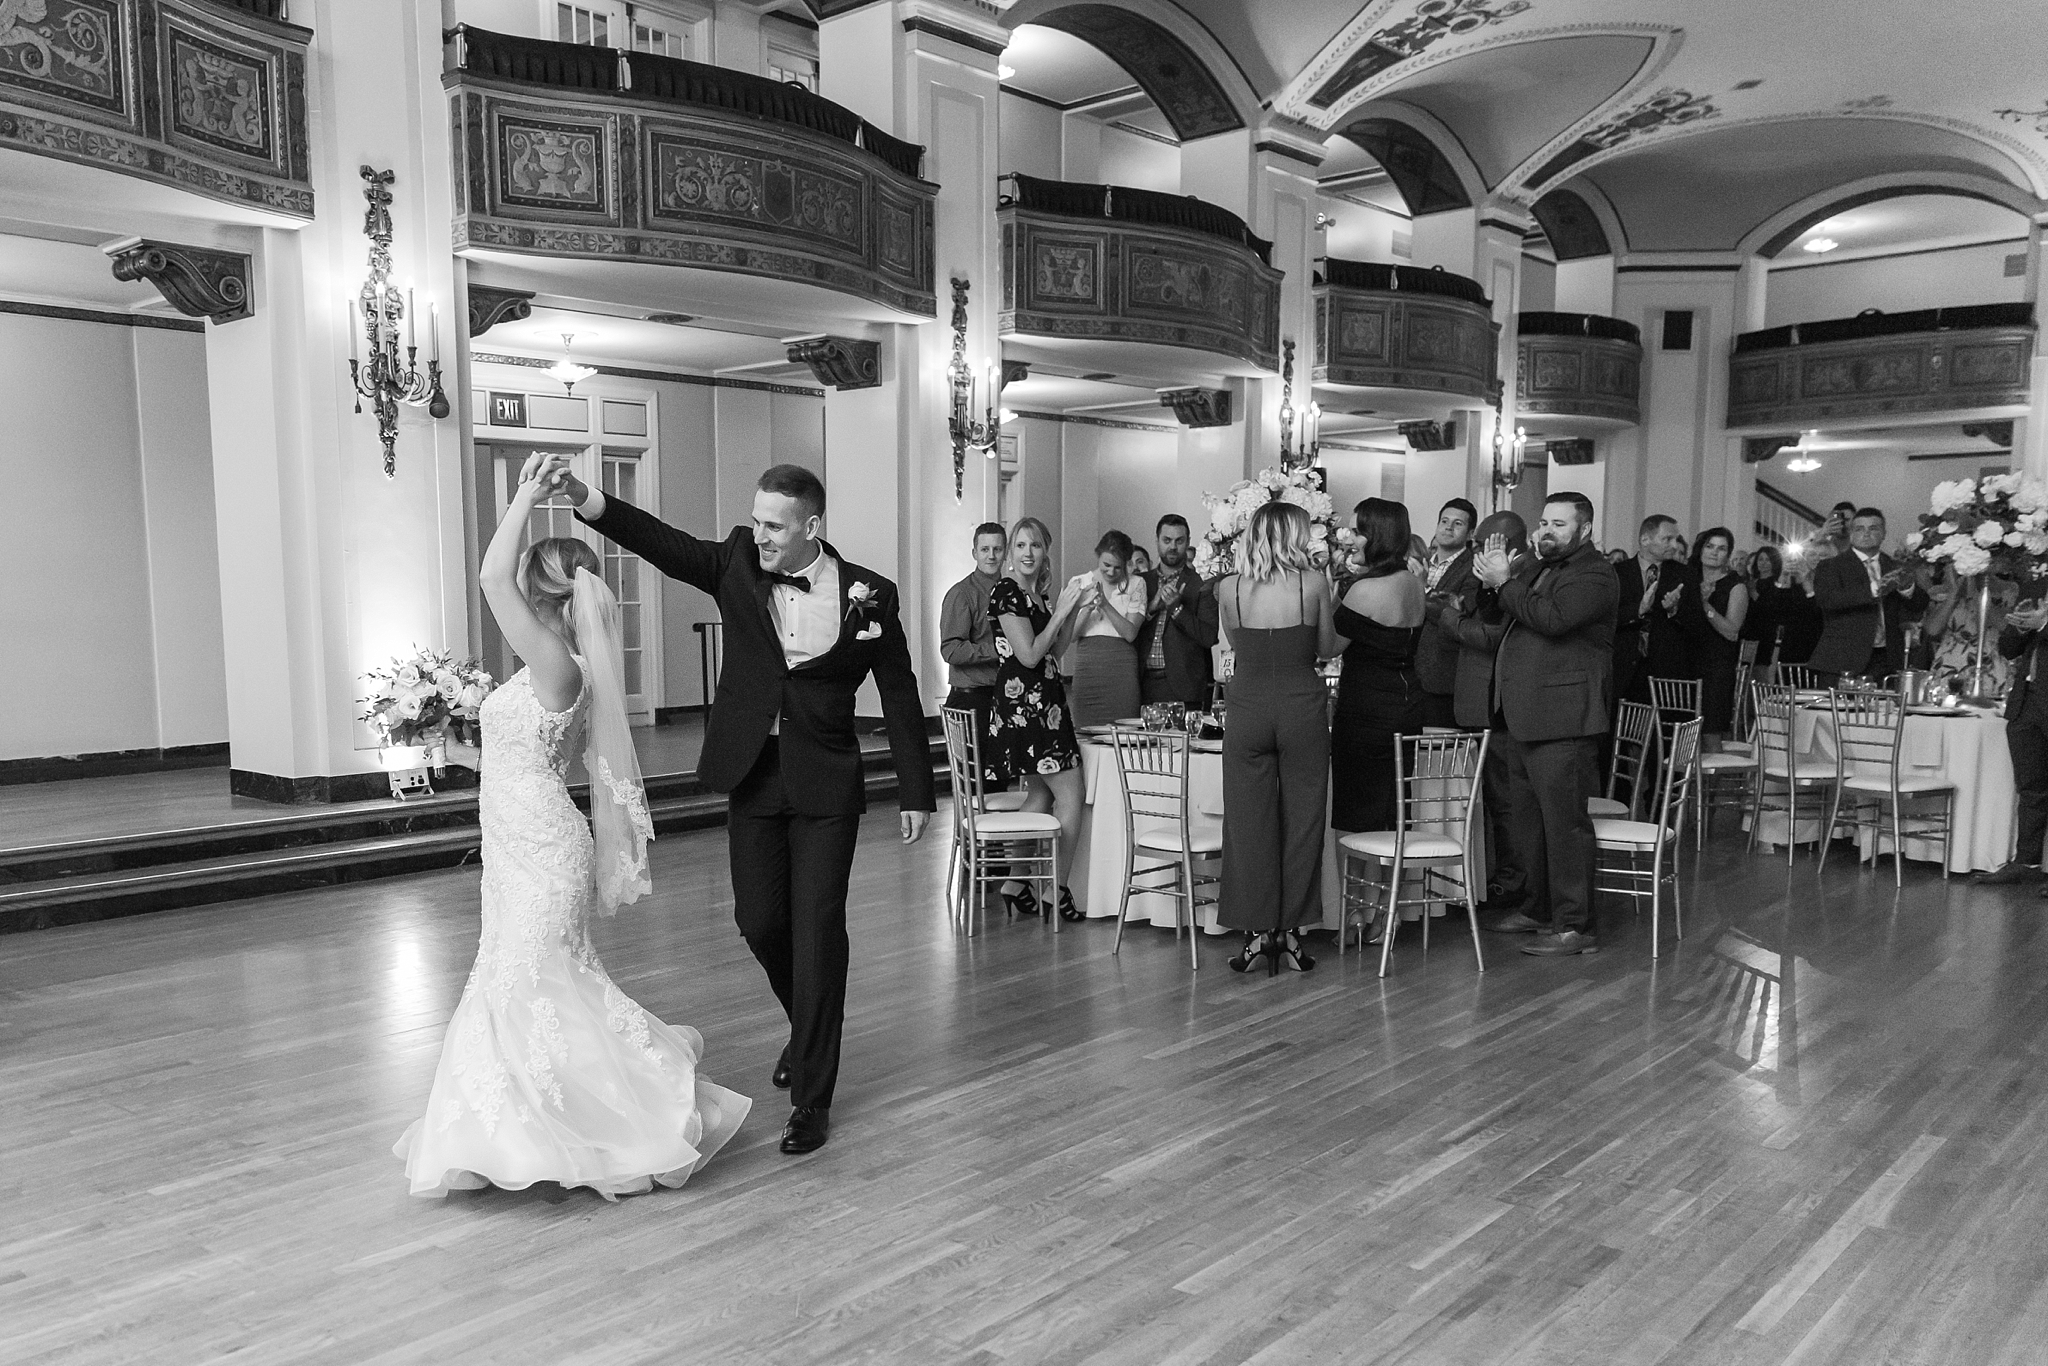 candid-romantic-wedding-photos-at-the-masonic-temple-belle-isle-detroit-institute-of-arts-in-detroit-michigan-by-courtney-carolyn-photography_0087.jpg